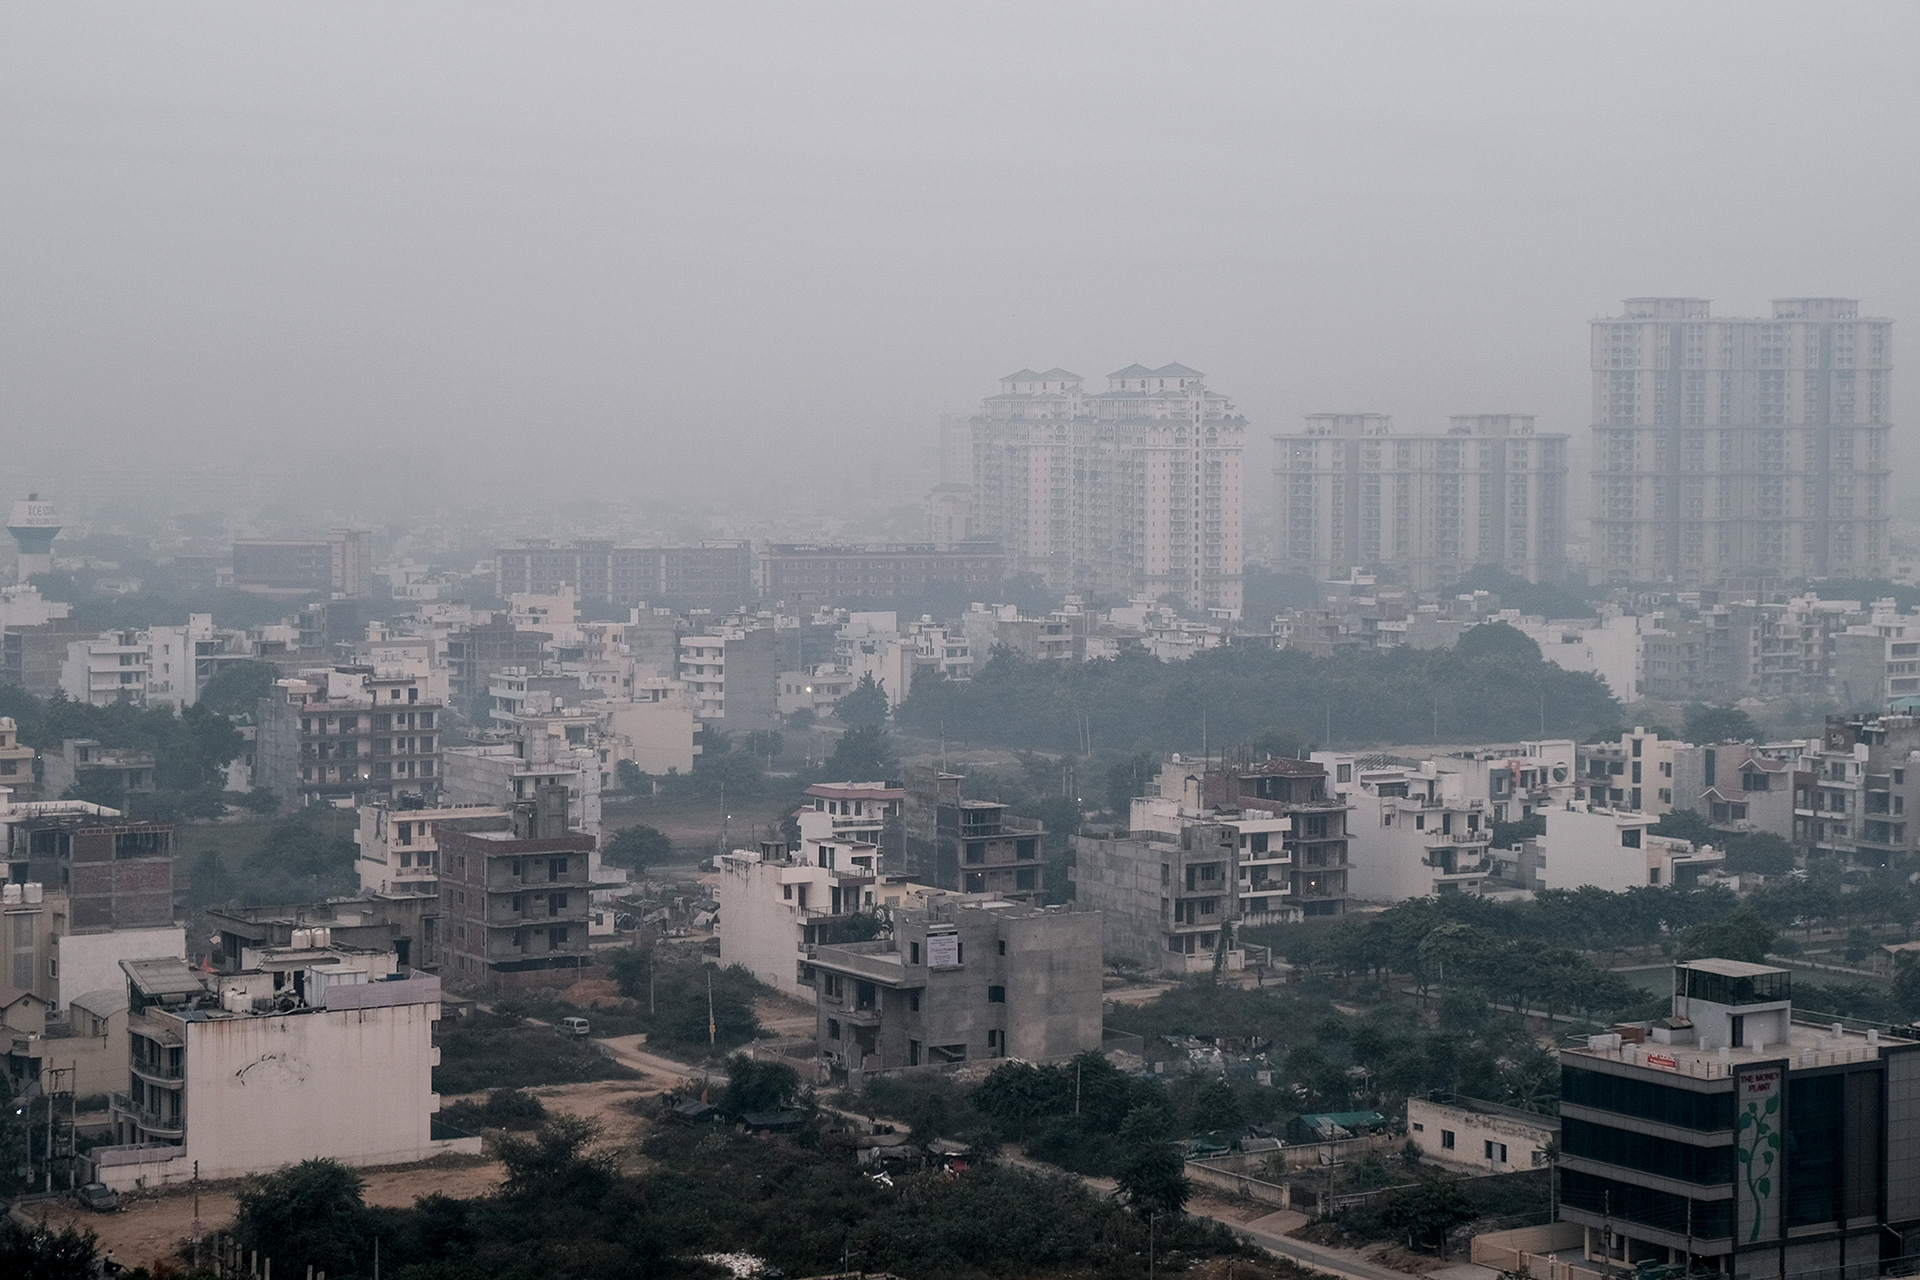 The dreary state of smog engulfed Delhi   |  Better Air Now | IKEA | STIRworld